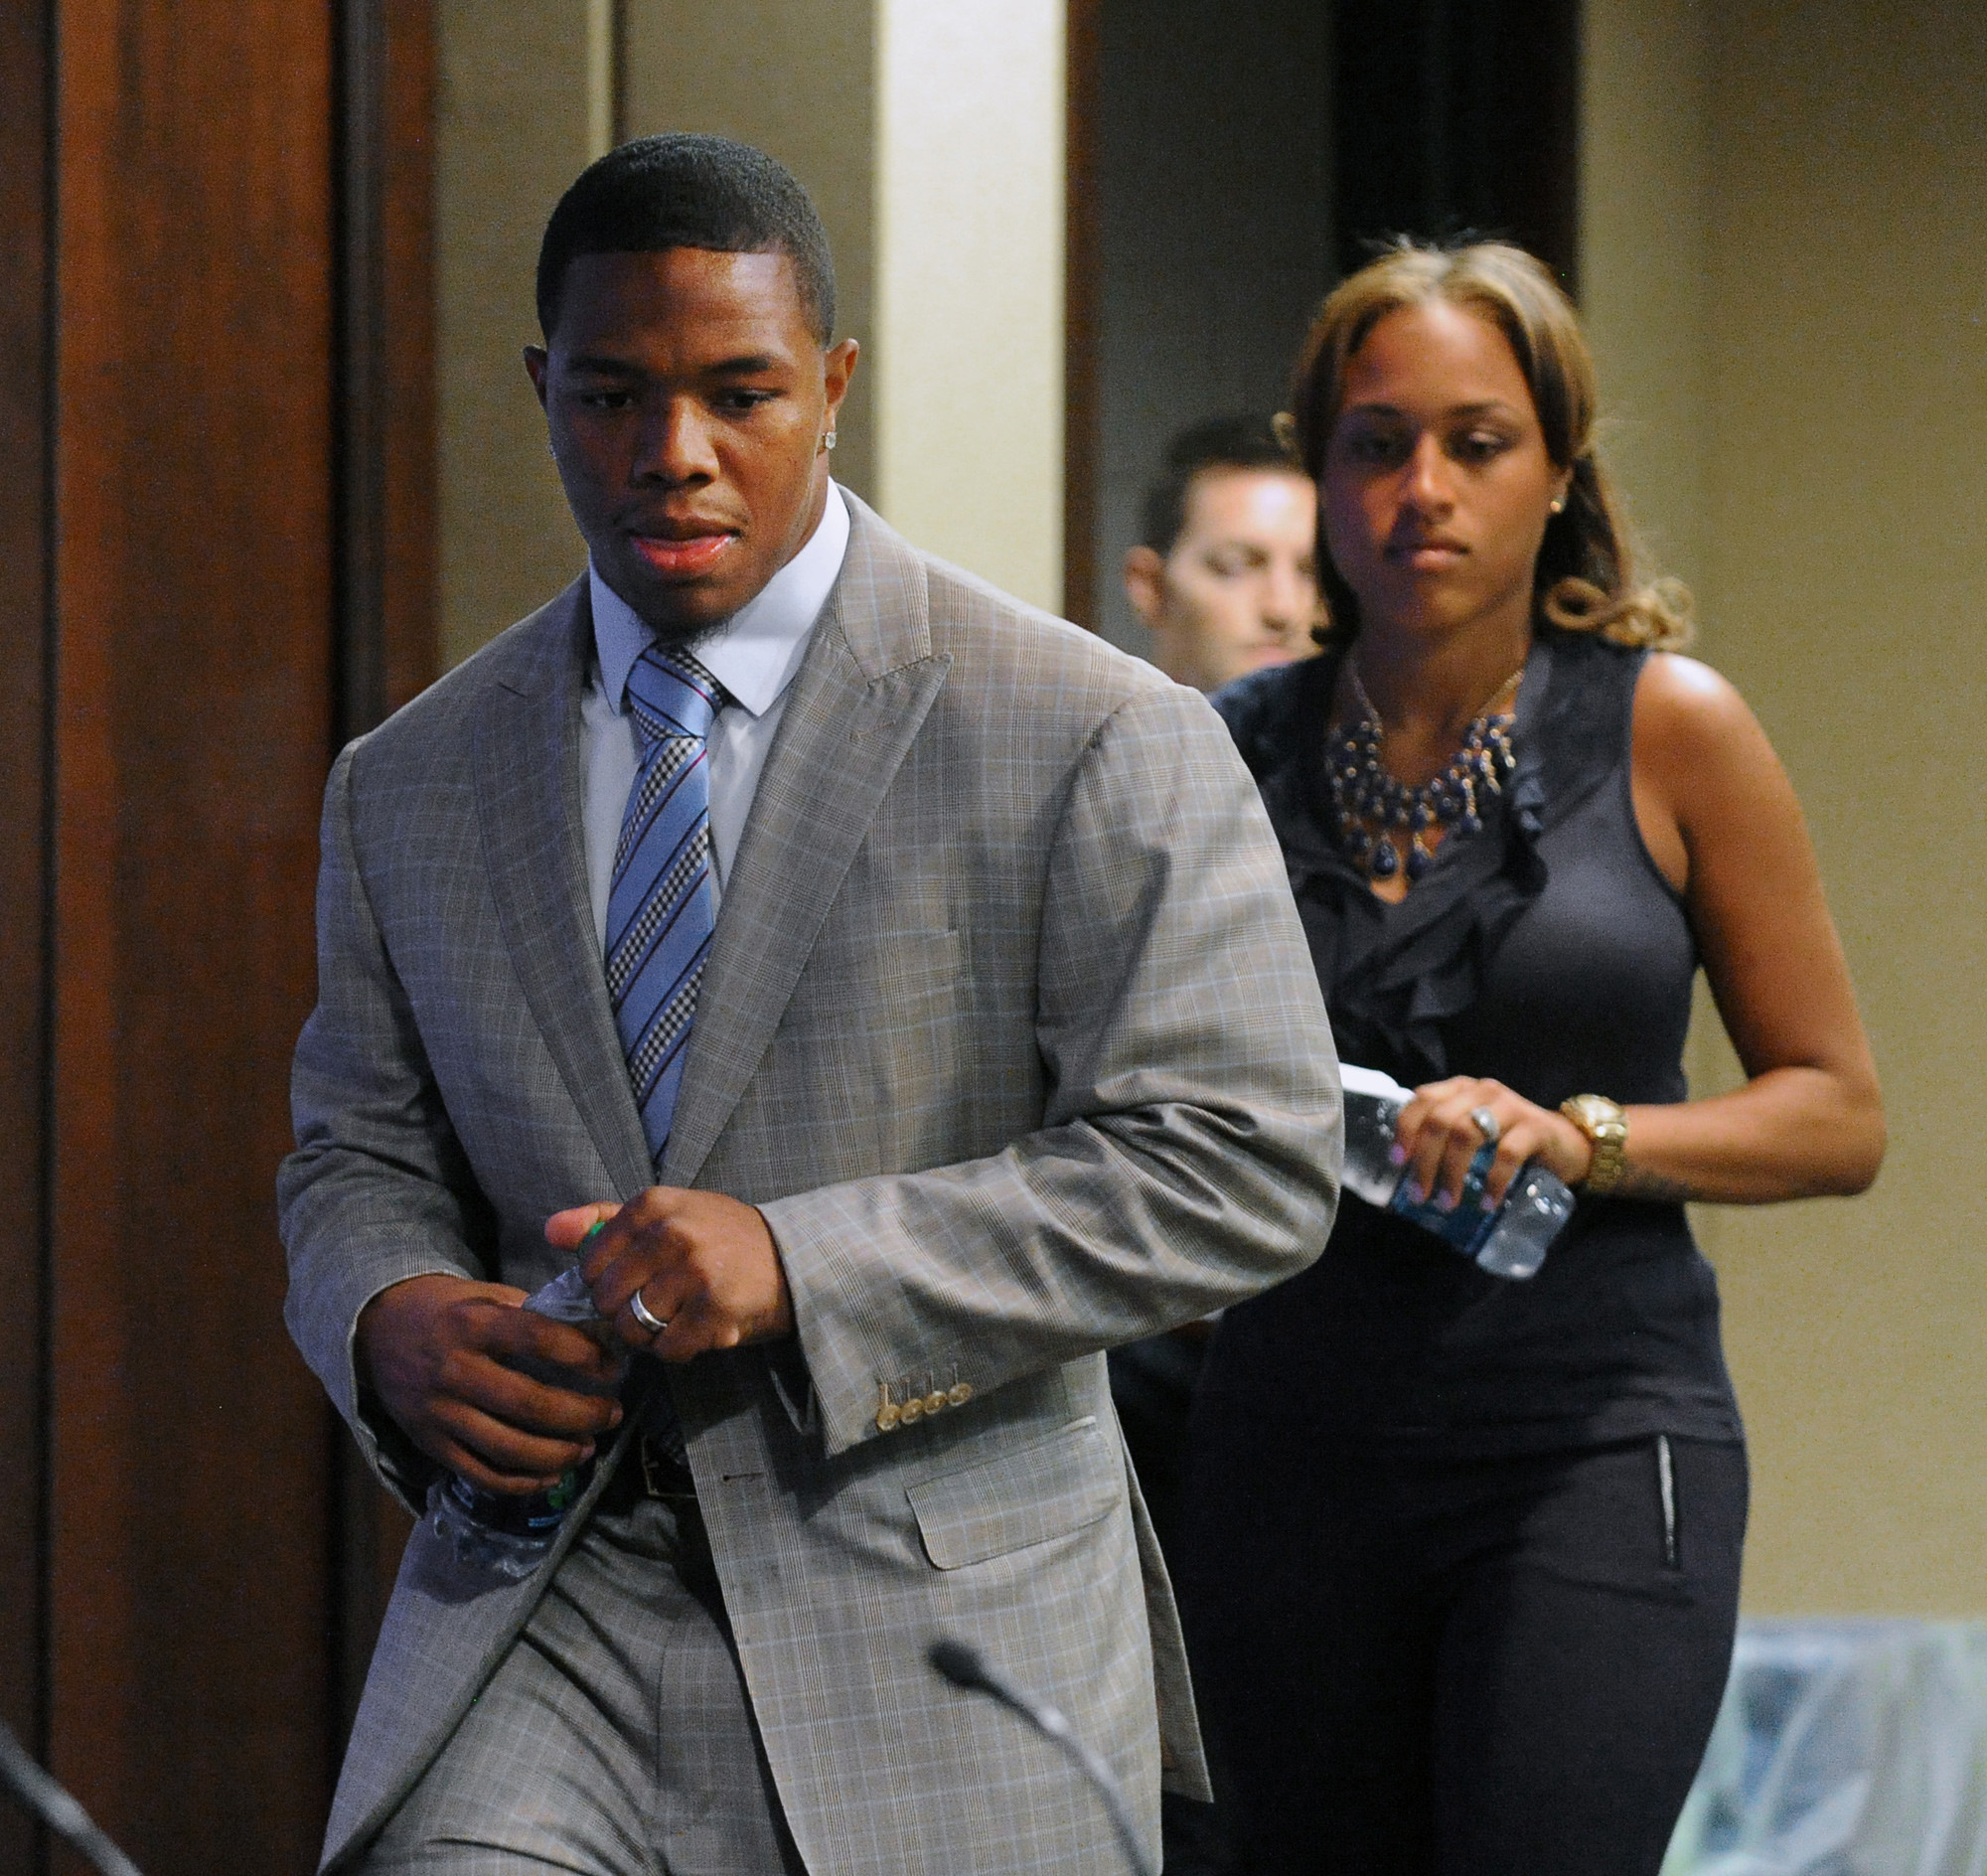 domestic violence on ray rice Ray rice was released by the ravens and indefinitely suspended by the nfl on sept 8 after a new video surfaced of his february assault on his then-fiancee (now his wife) janay rice.